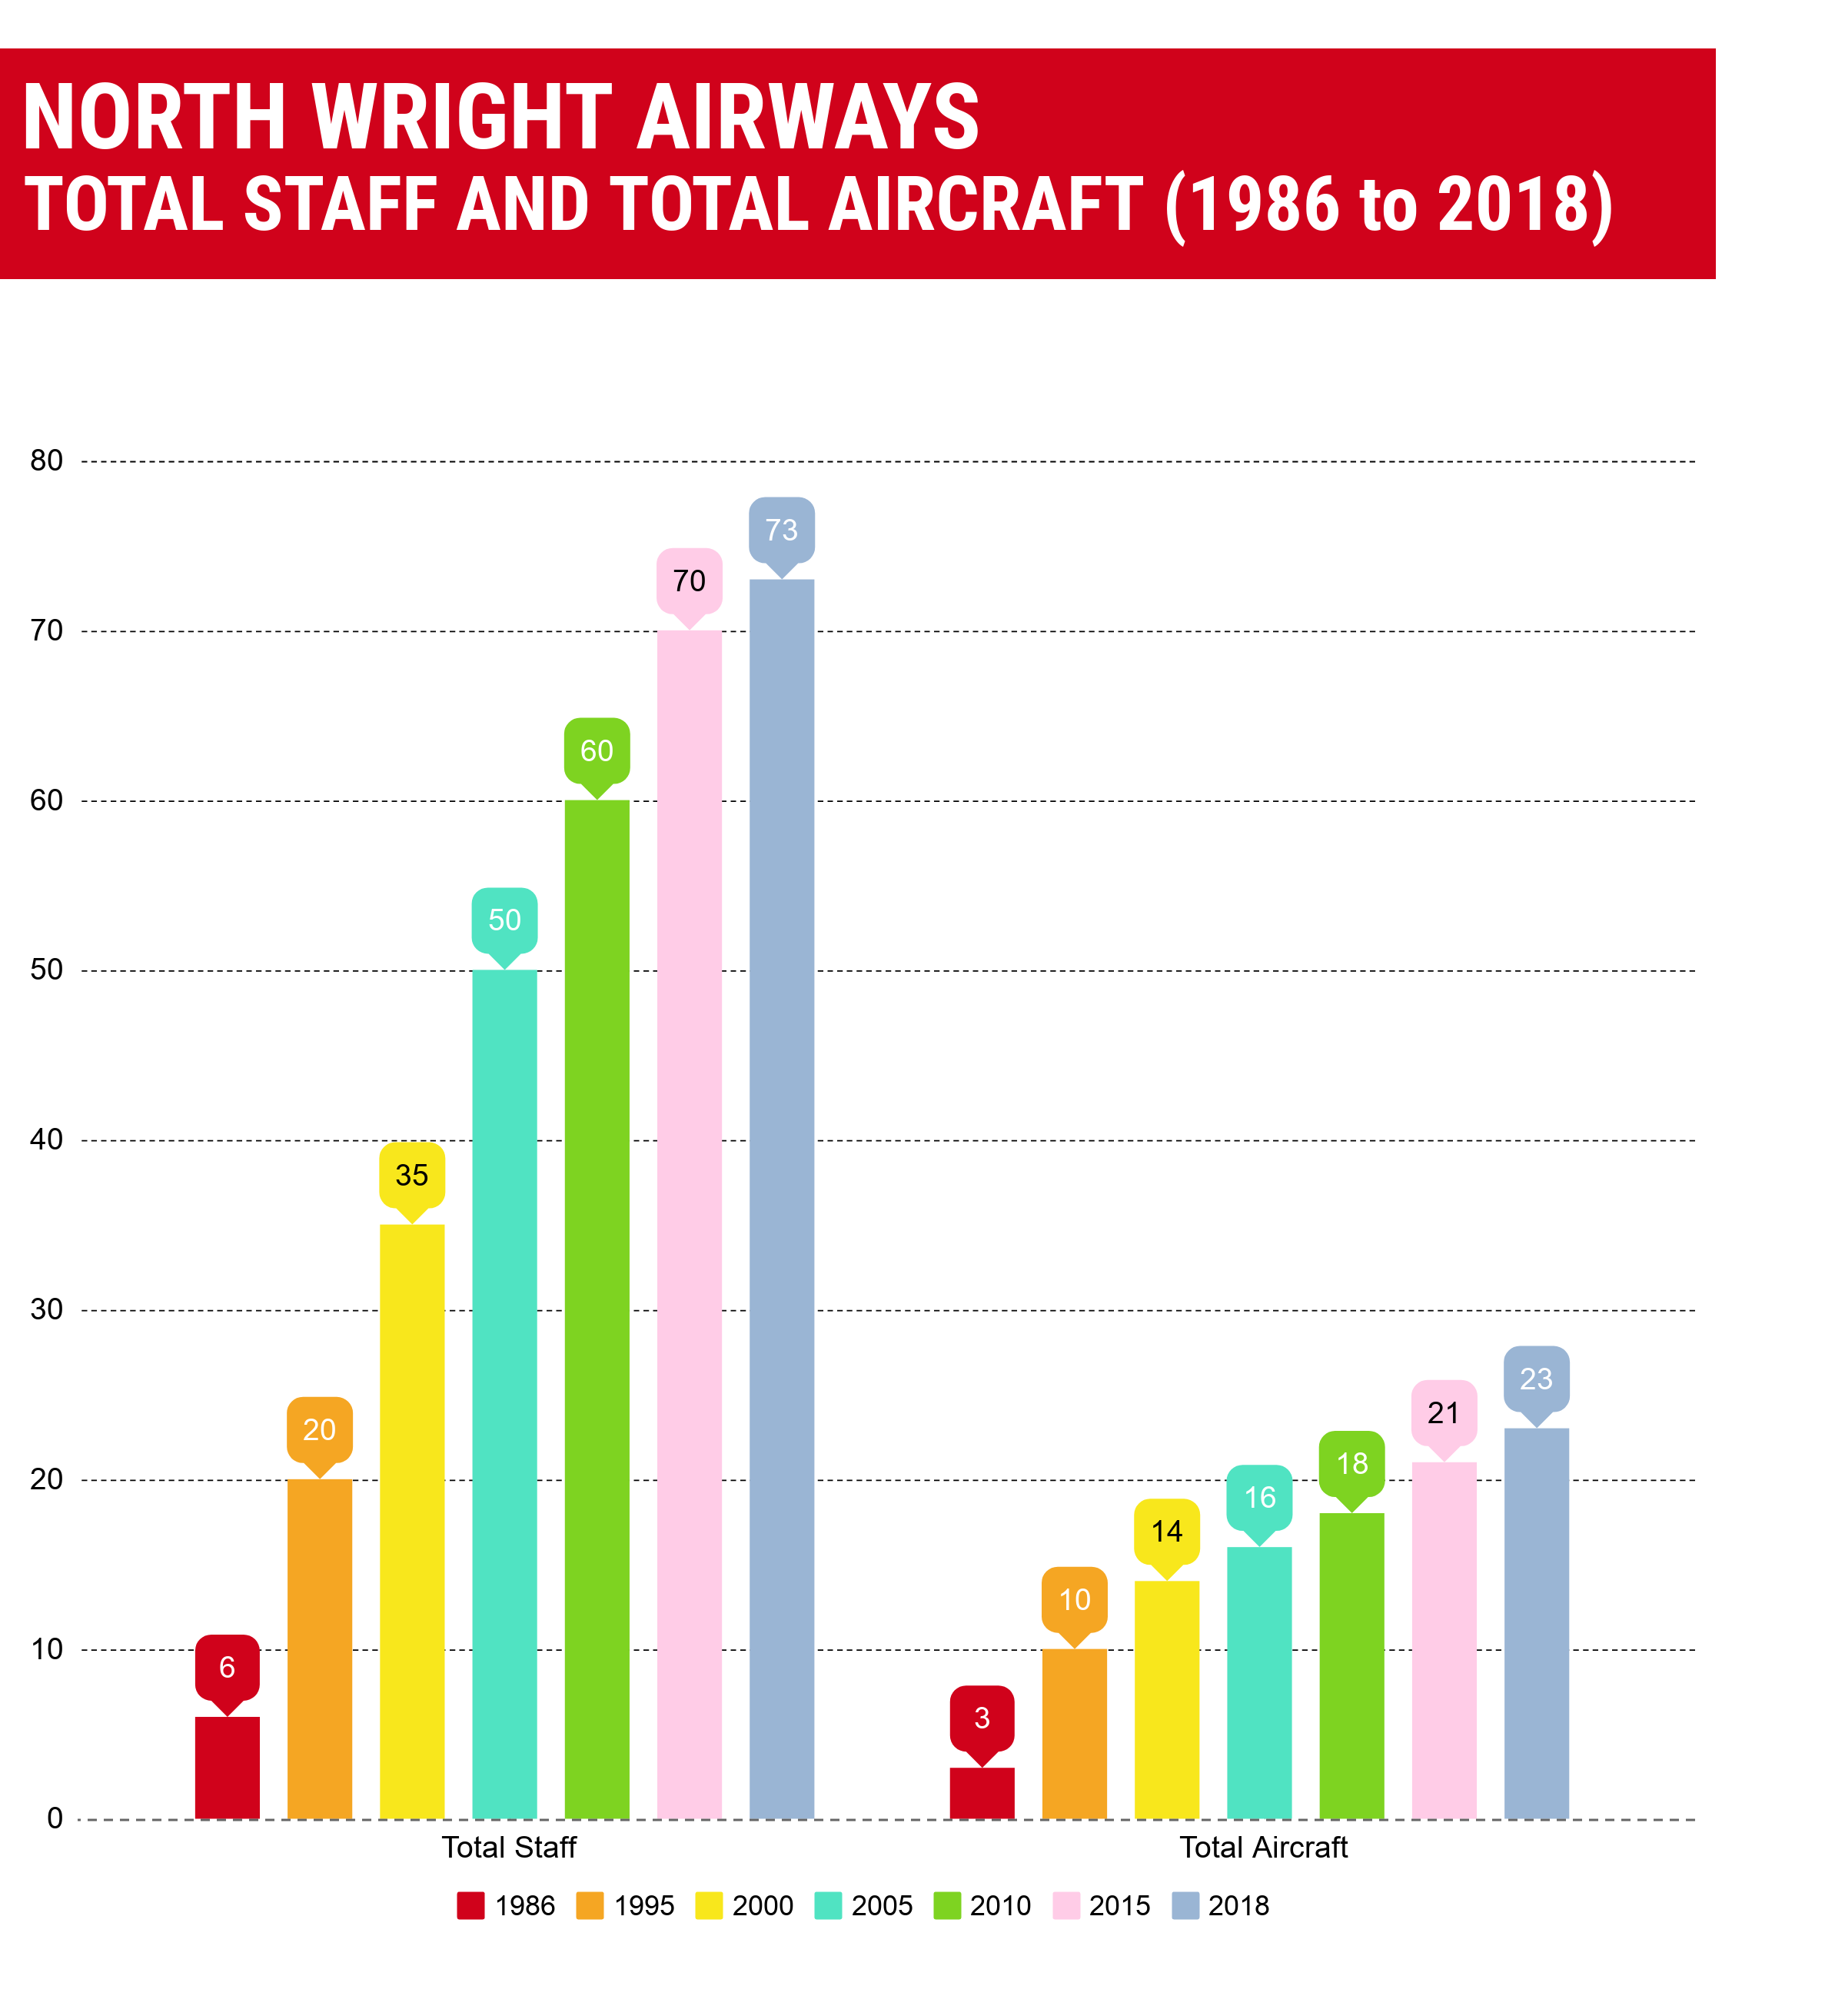 North-Wright Airways - Graph Displaying Total Staff and Total Aircraft from 1986 to 2018